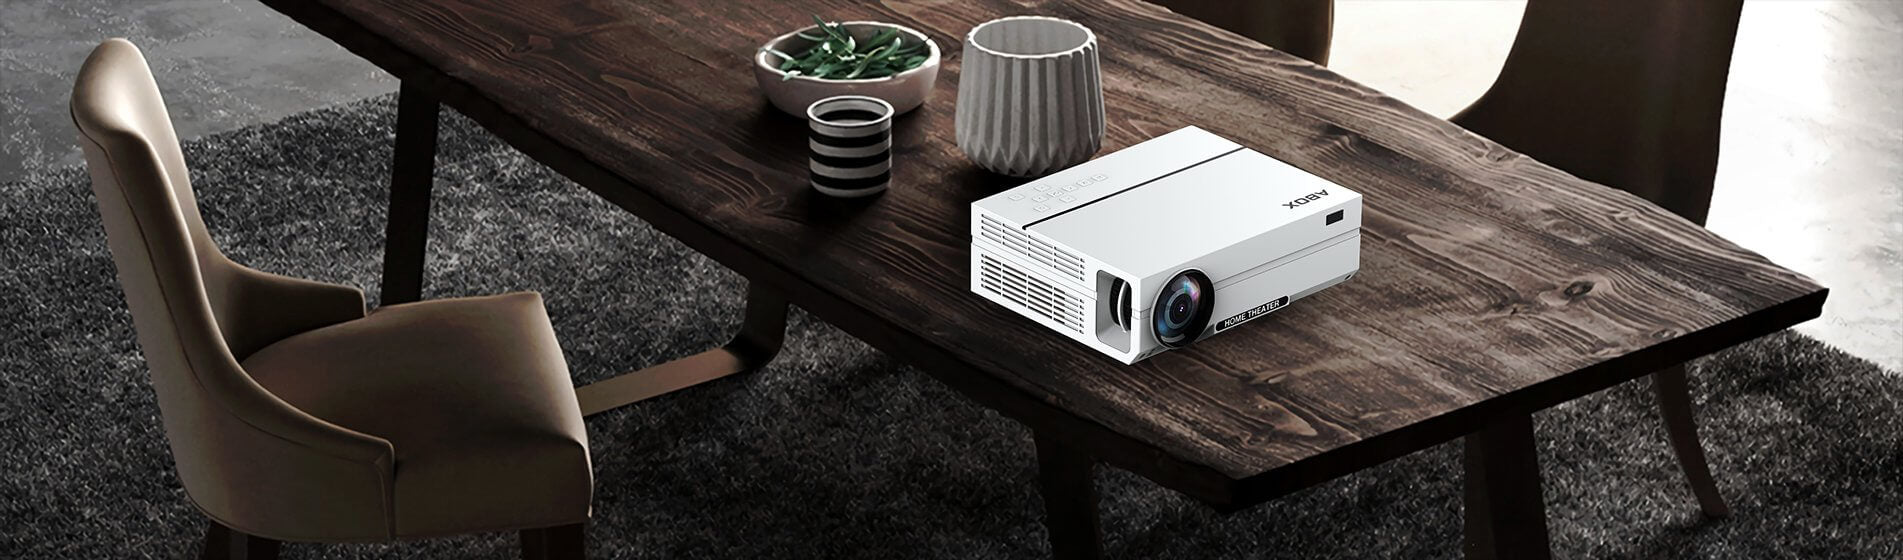 ABOX A6 LCD Projector on Table